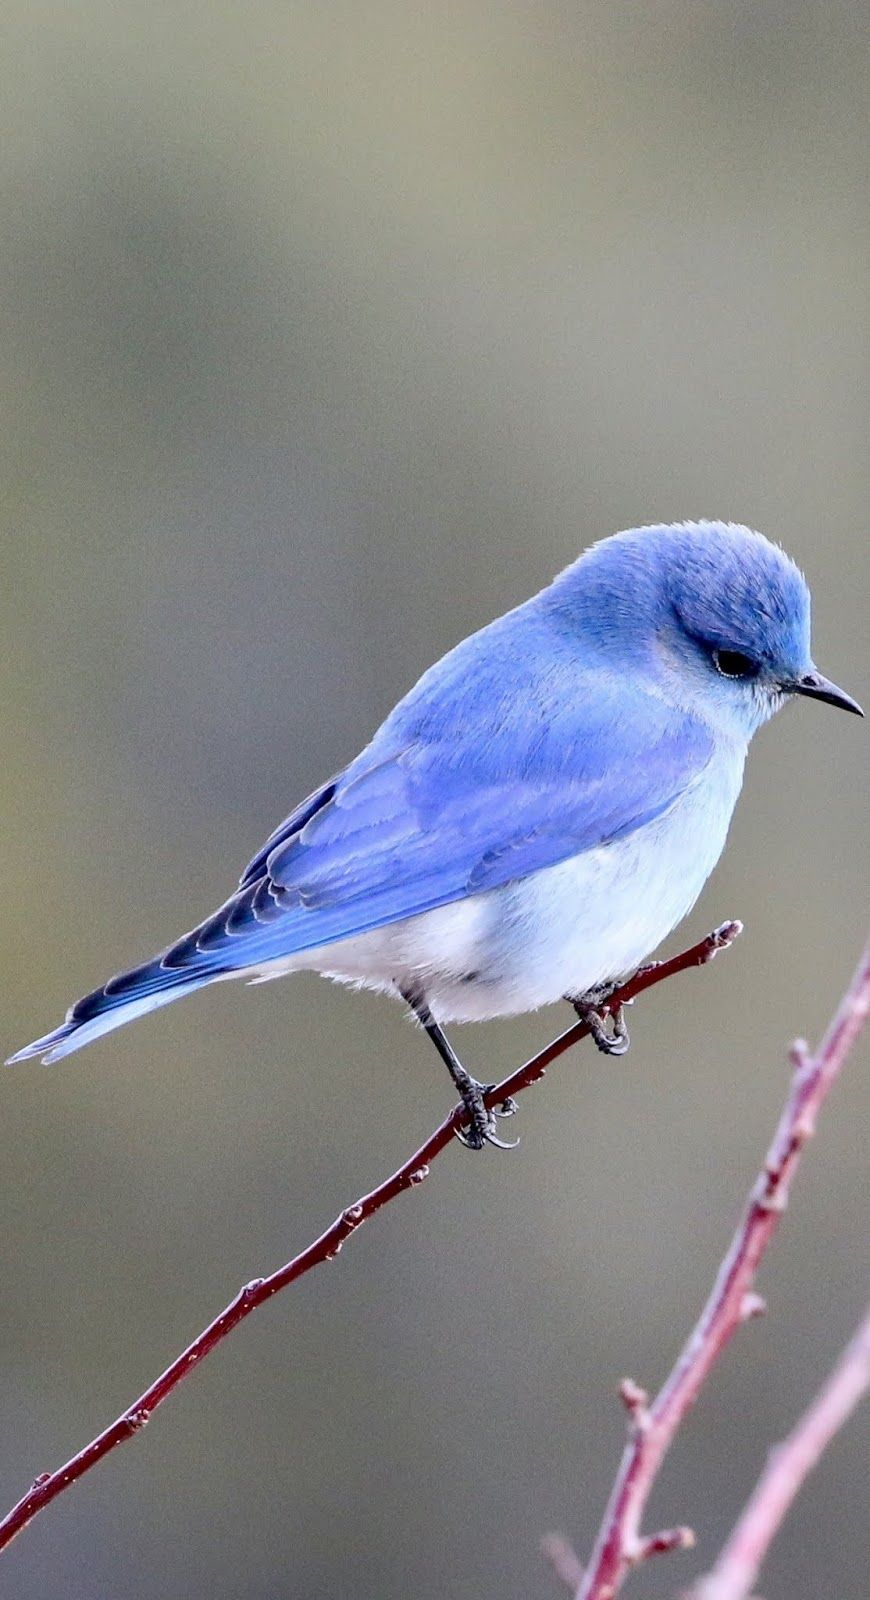 A cute little blue bird